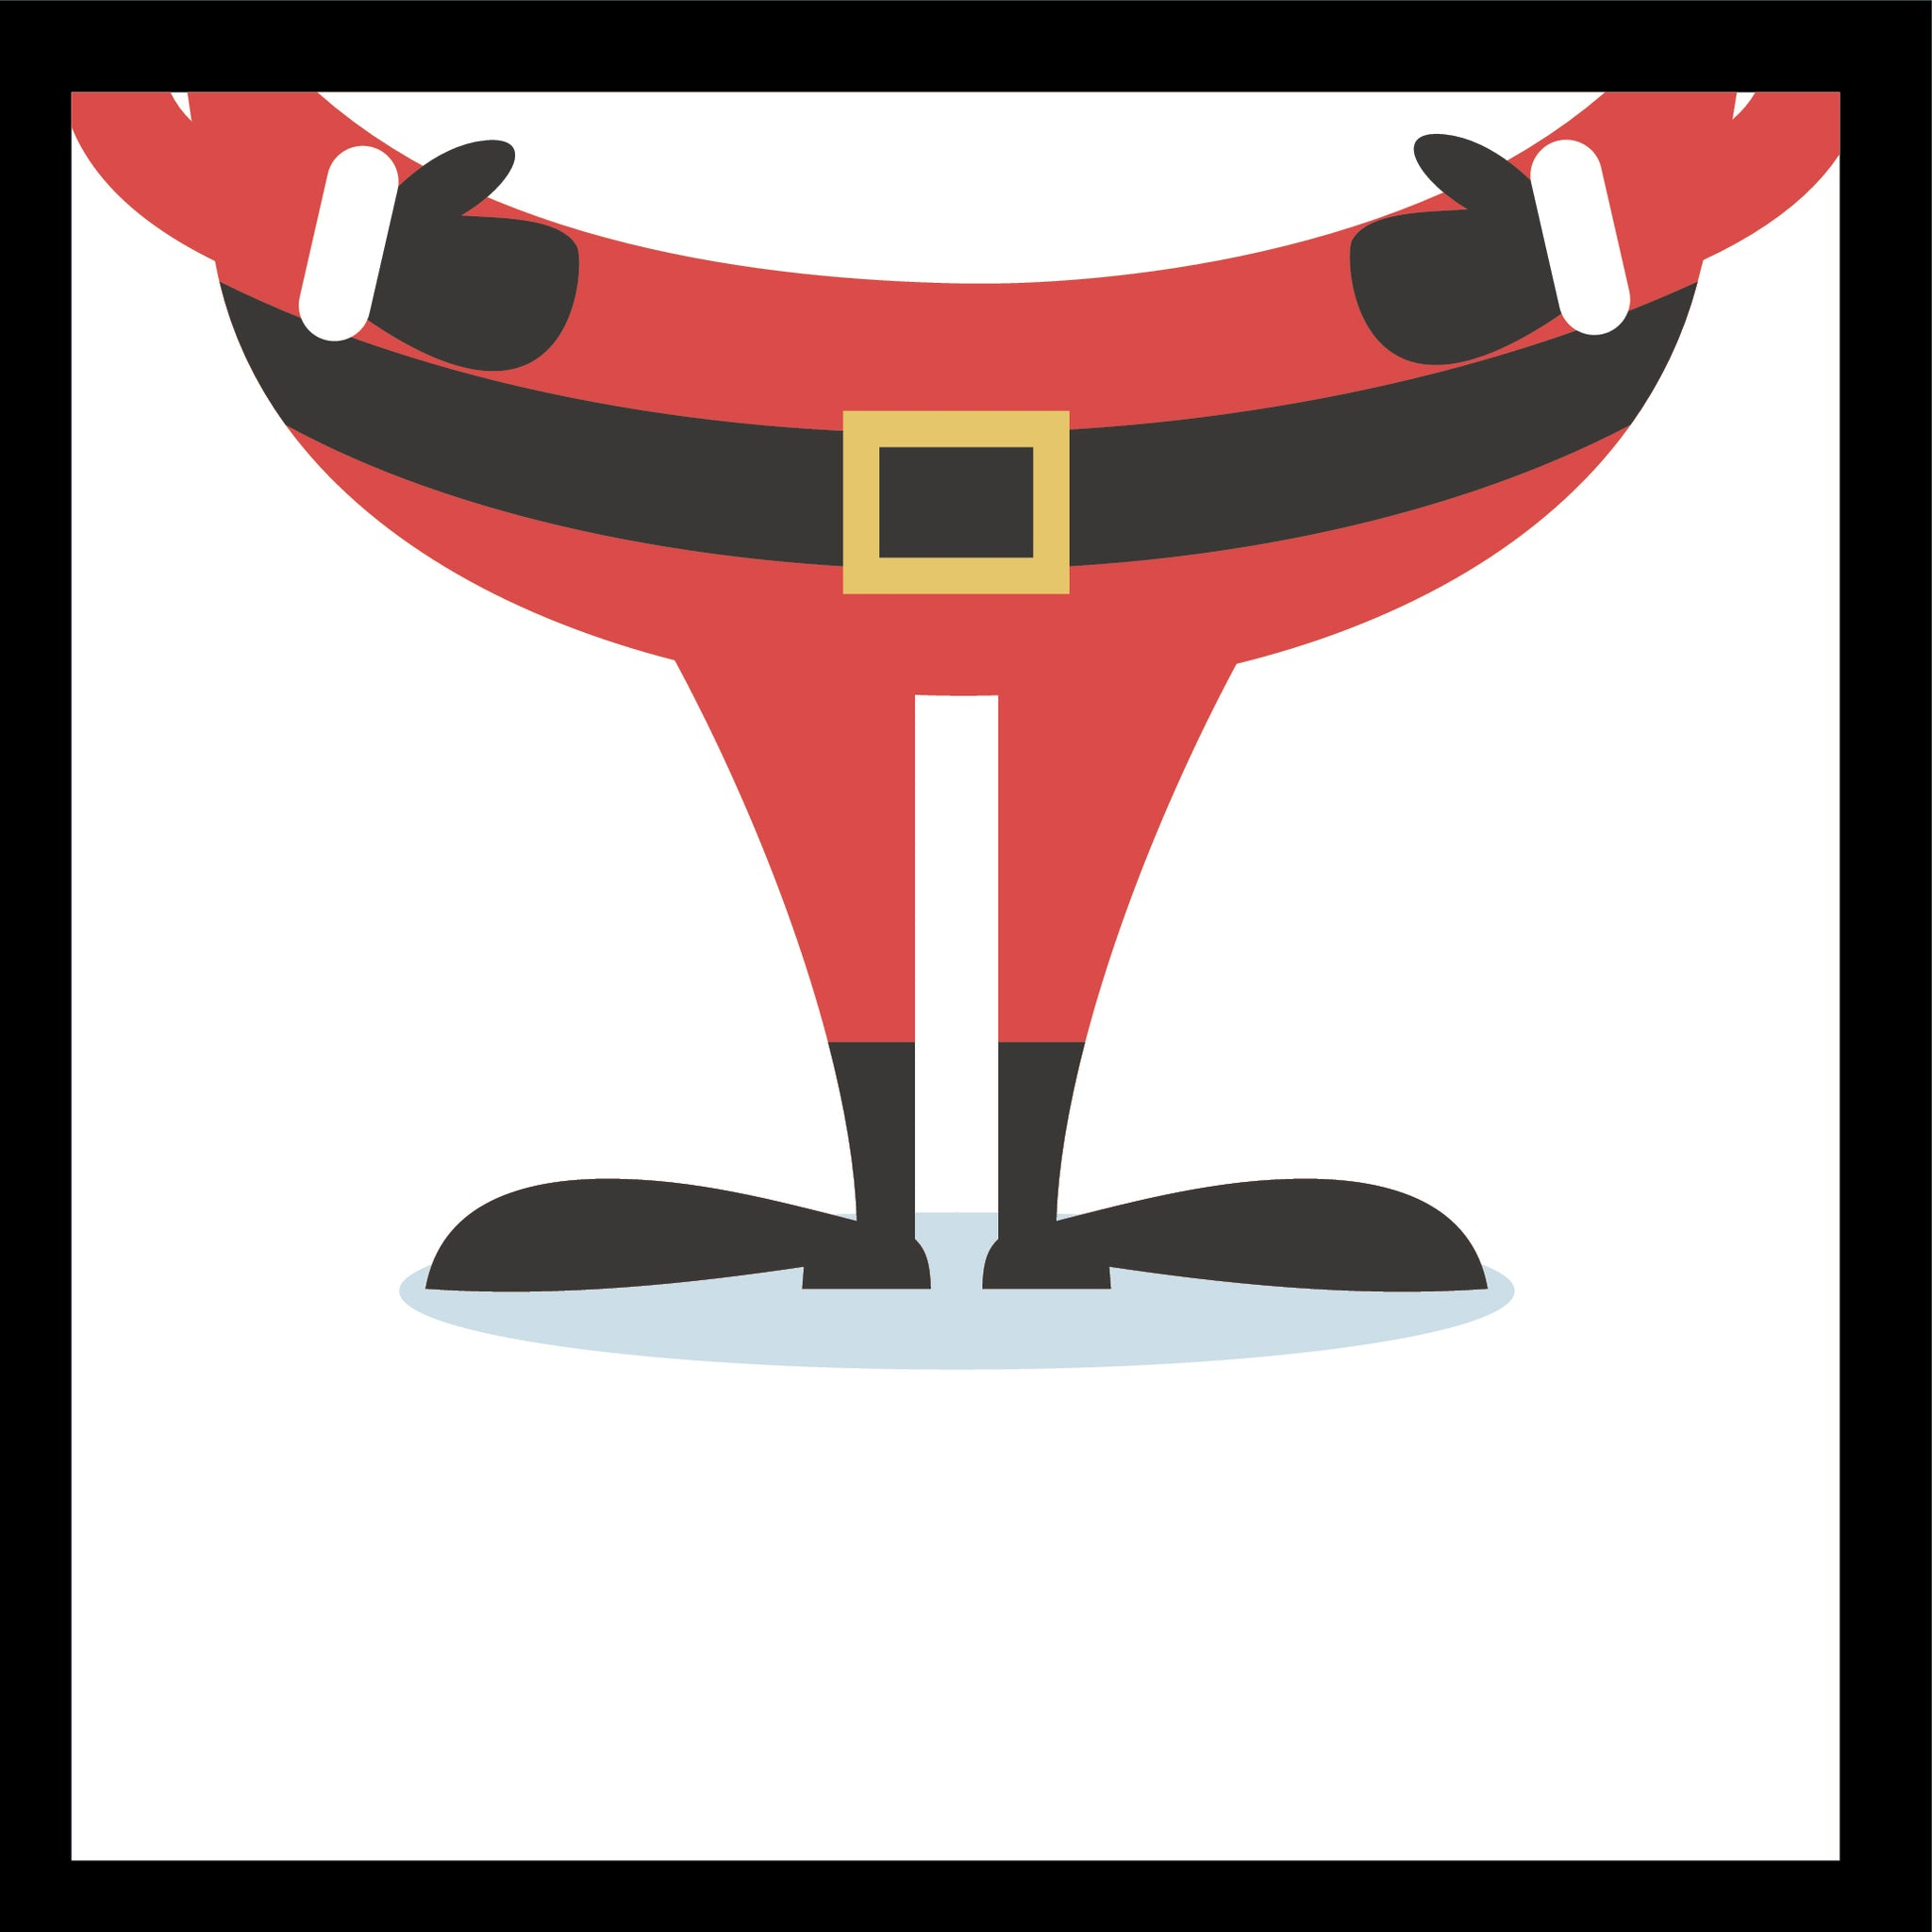 Cute Happy Santa Tile Square (2) Border Around Image As Shown Vinyl Decal Sticker